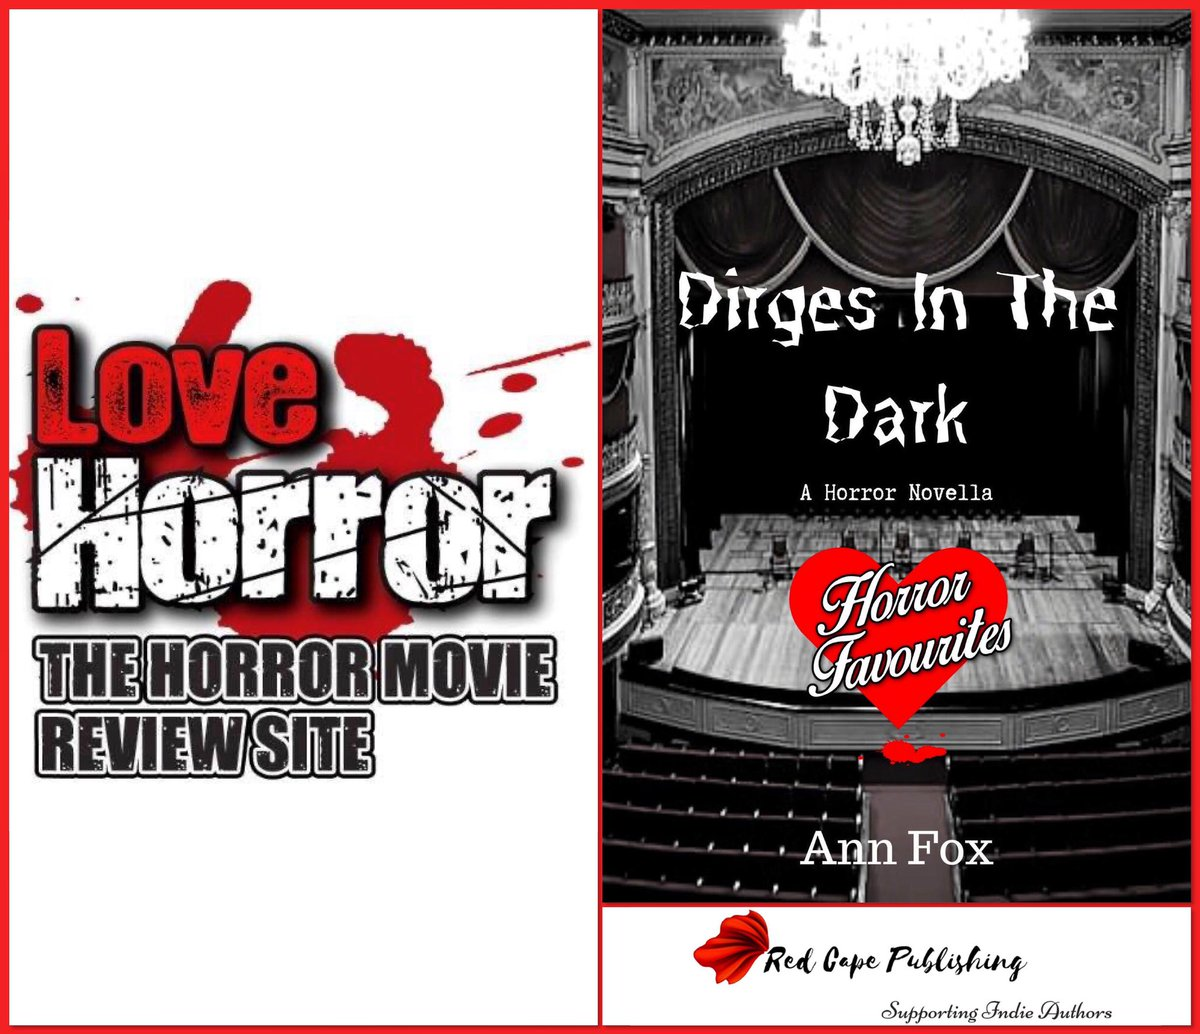 In a new @LoveHorror interview @antoinettefoxny talks about her latest book 'Dirges in the Dark' which has been released by @RedCapePublish & her favourite horror film lovehorror.co.uk/interview/horr… #DirgesInTheDark #SpreadtheHorror #ShareTheHorror #promotehorror #NonProfitHorror